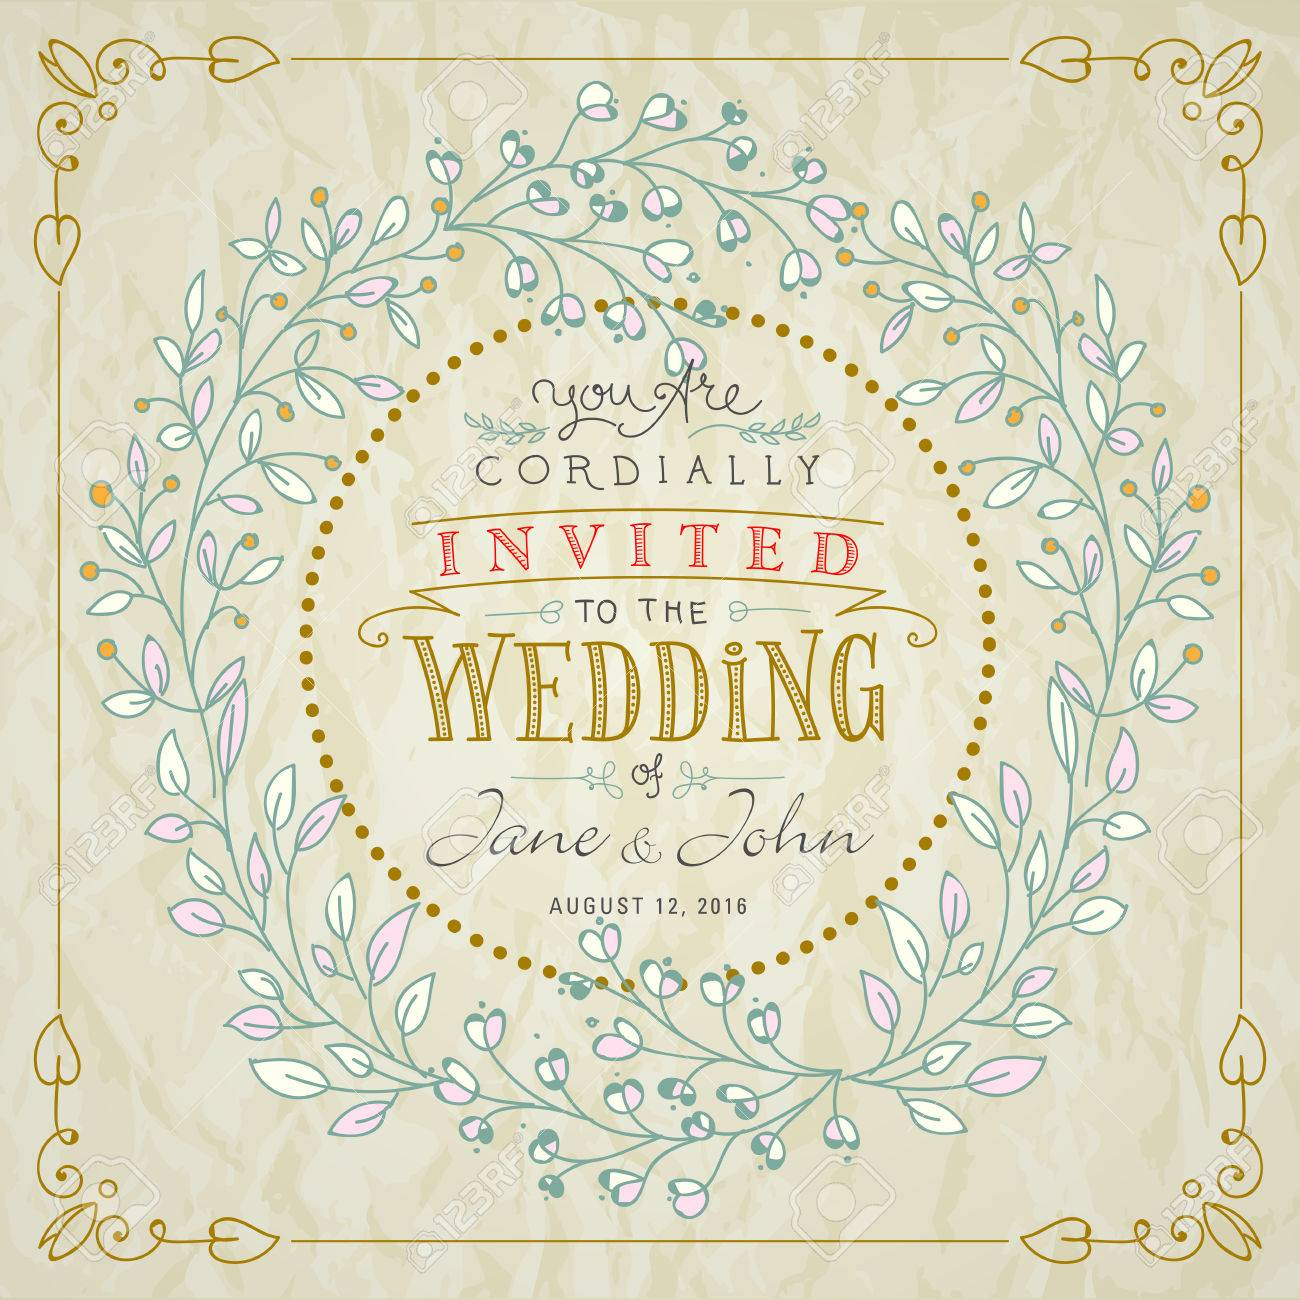 Wedding Invitation Hand Lettered Text With Hand Drawn Frame